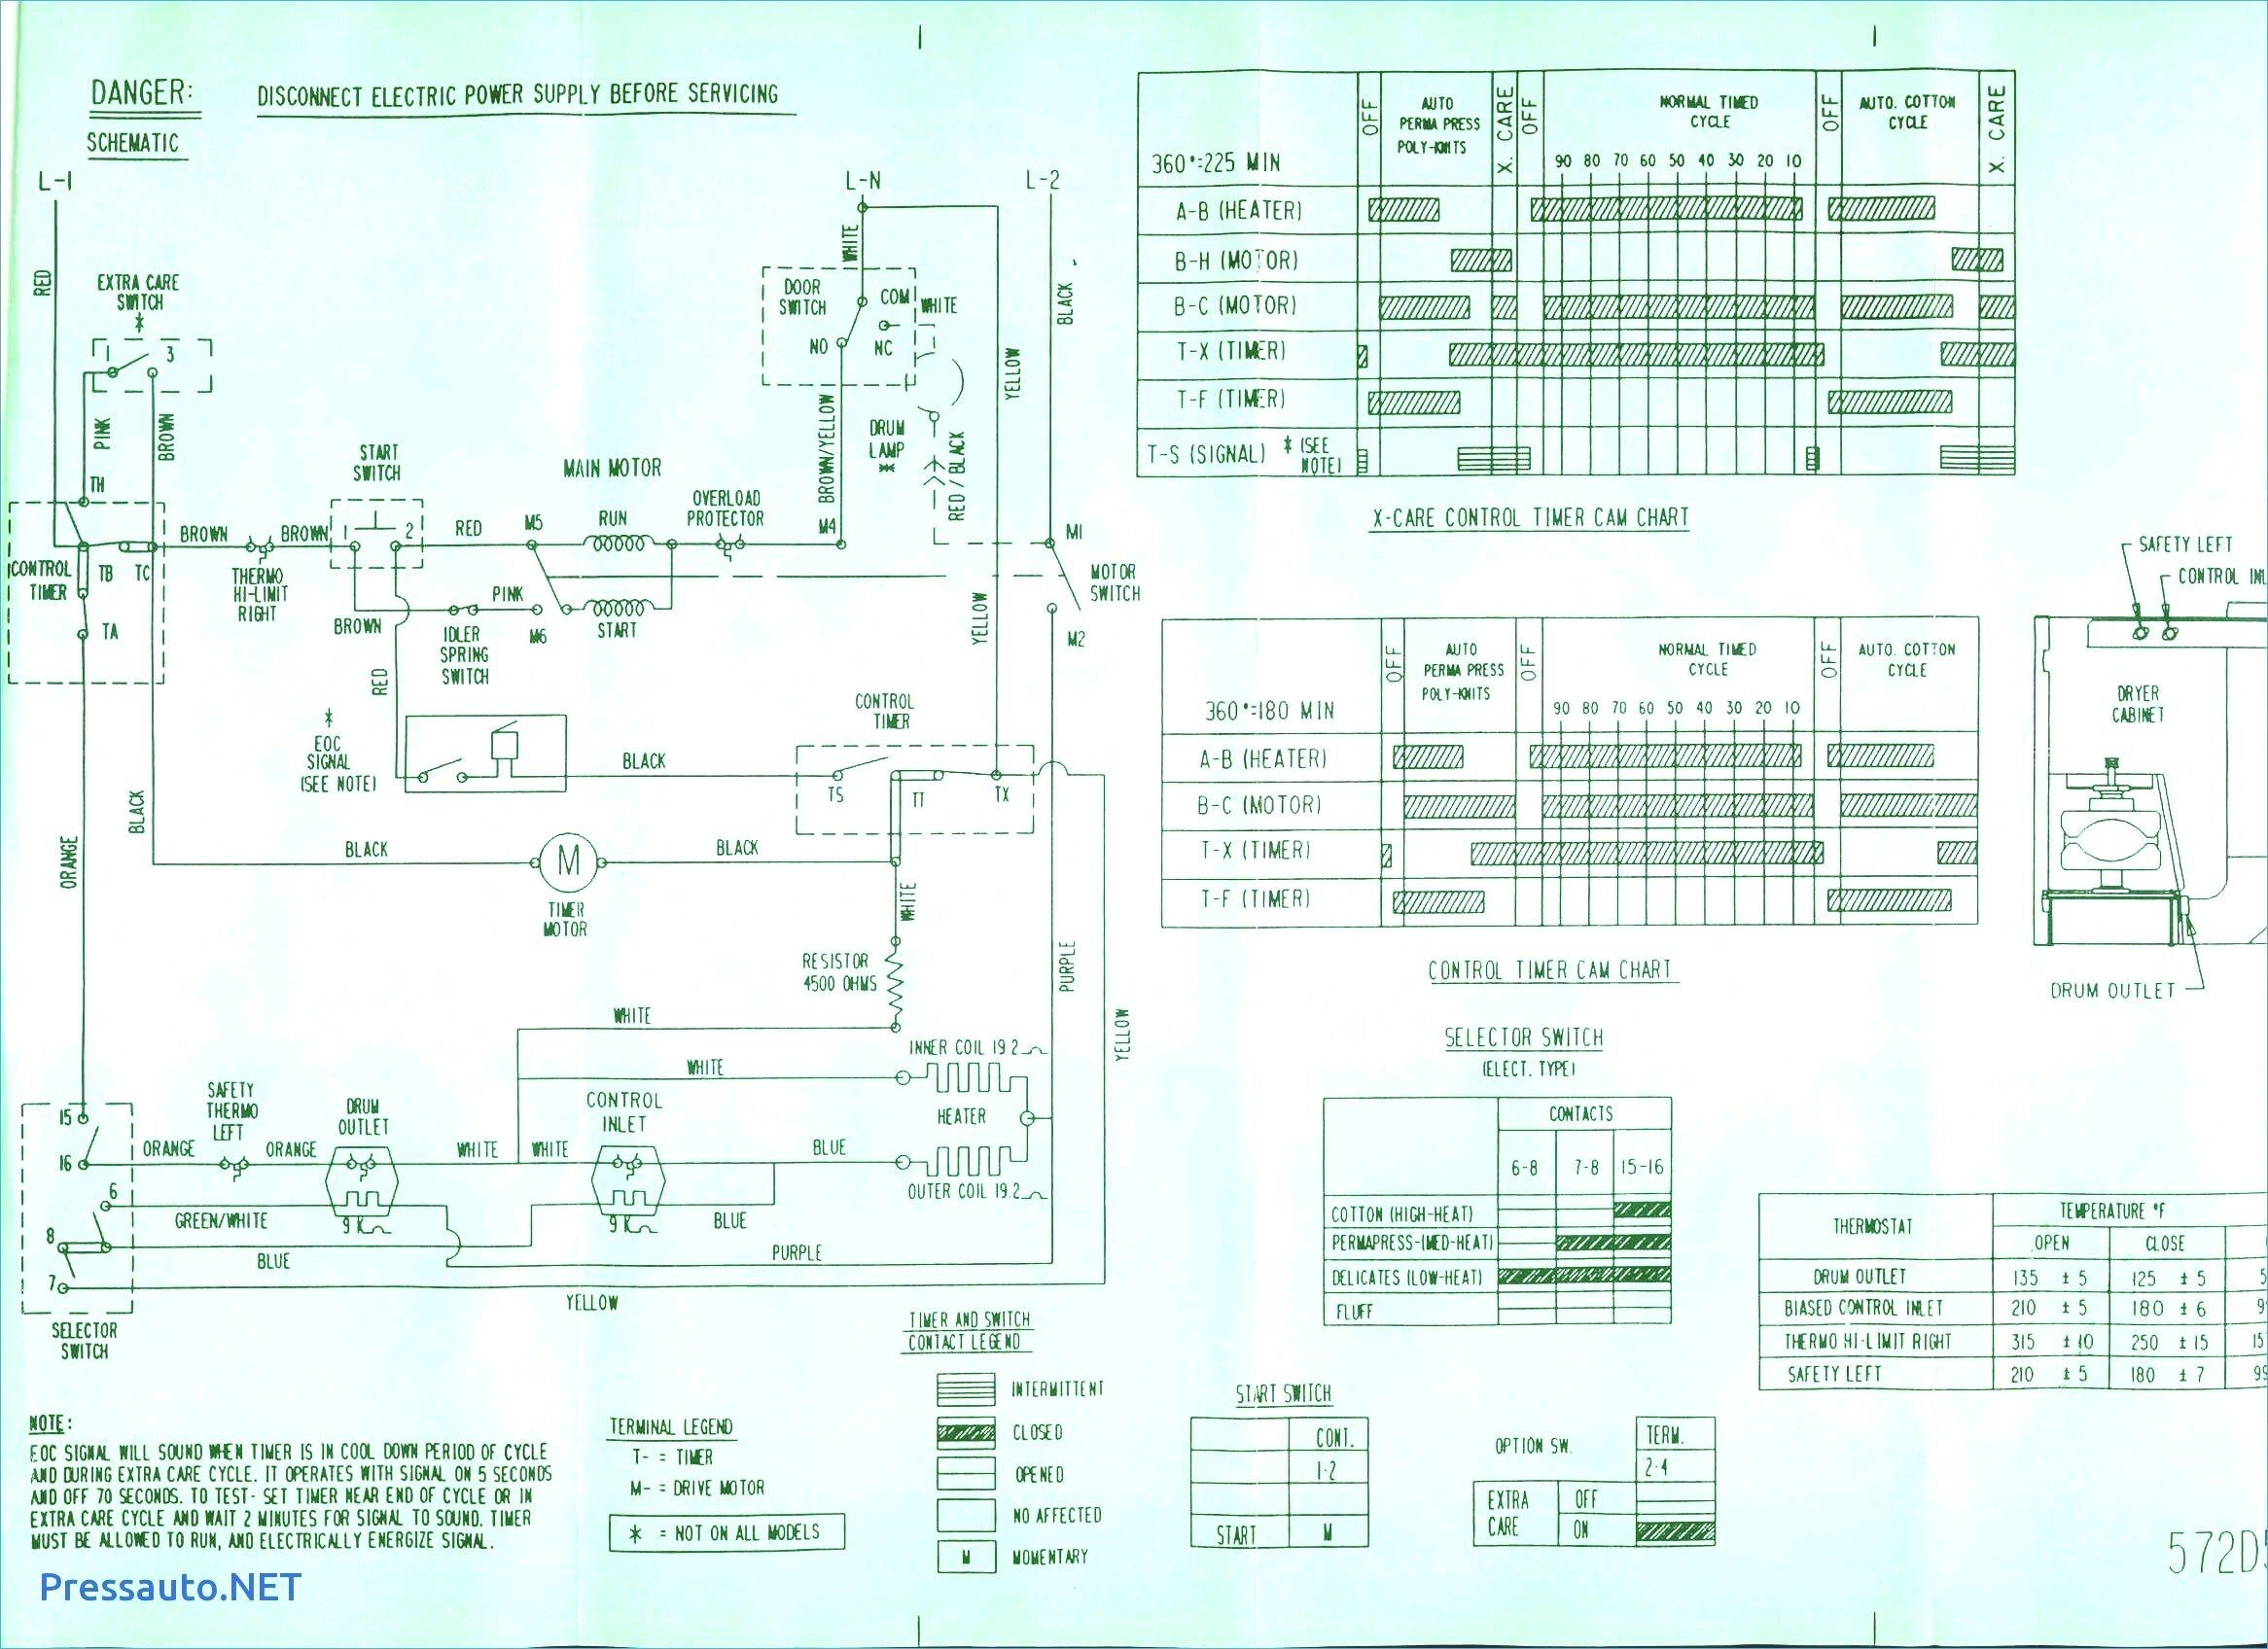 Ge Oven Wiring Schematic - Wiring Diagrams Ge Oven Schematic Diagram on